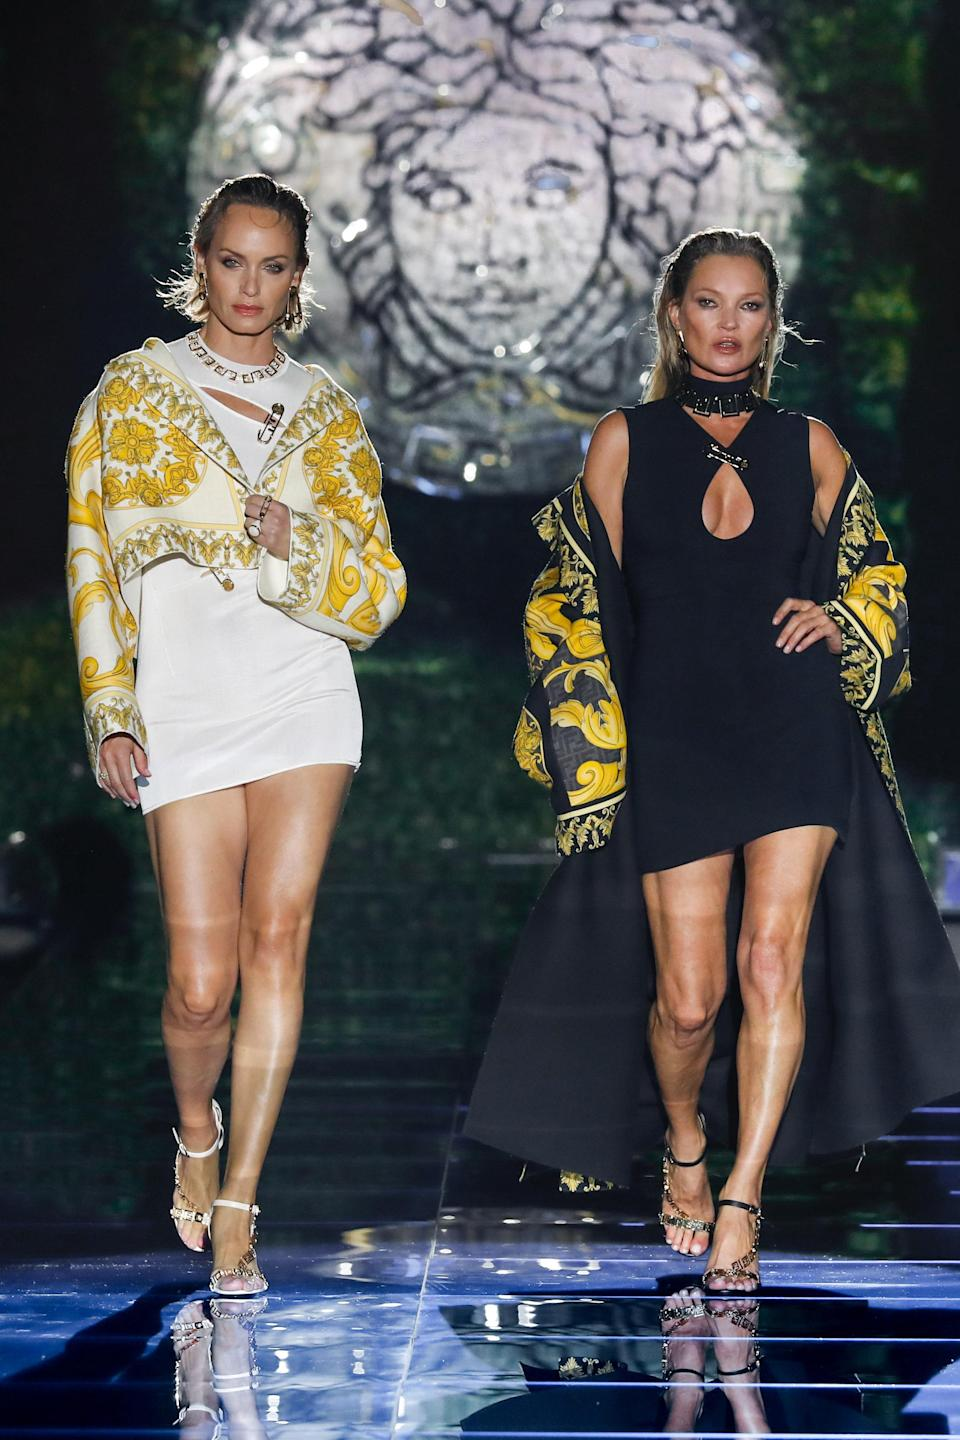 Amber Valletta and Kate Moss at the Versace X Fendi Collaboration Pre-Fall 2022. - Credit: Aitor Rosás Suné/WWD